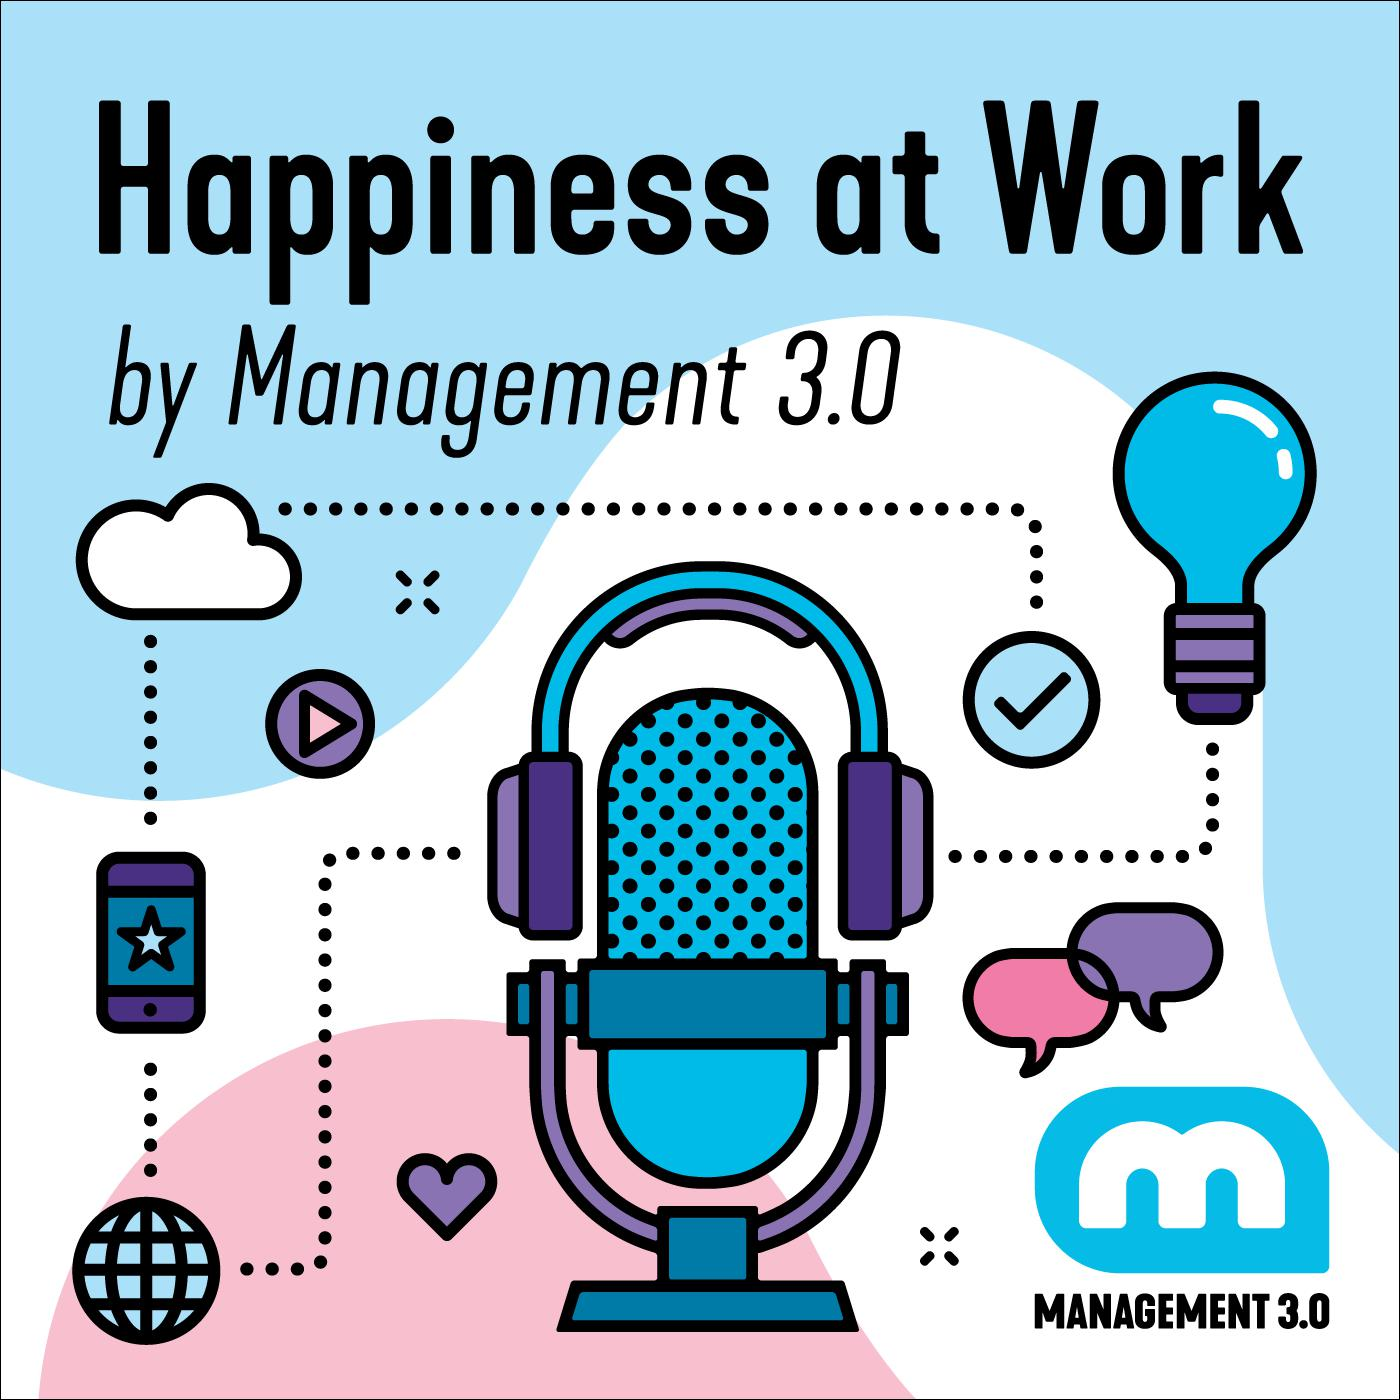 happiness-at-work-management-30-PVnN35lagiI-VpyLIC_2duB.1400x1400 (1)